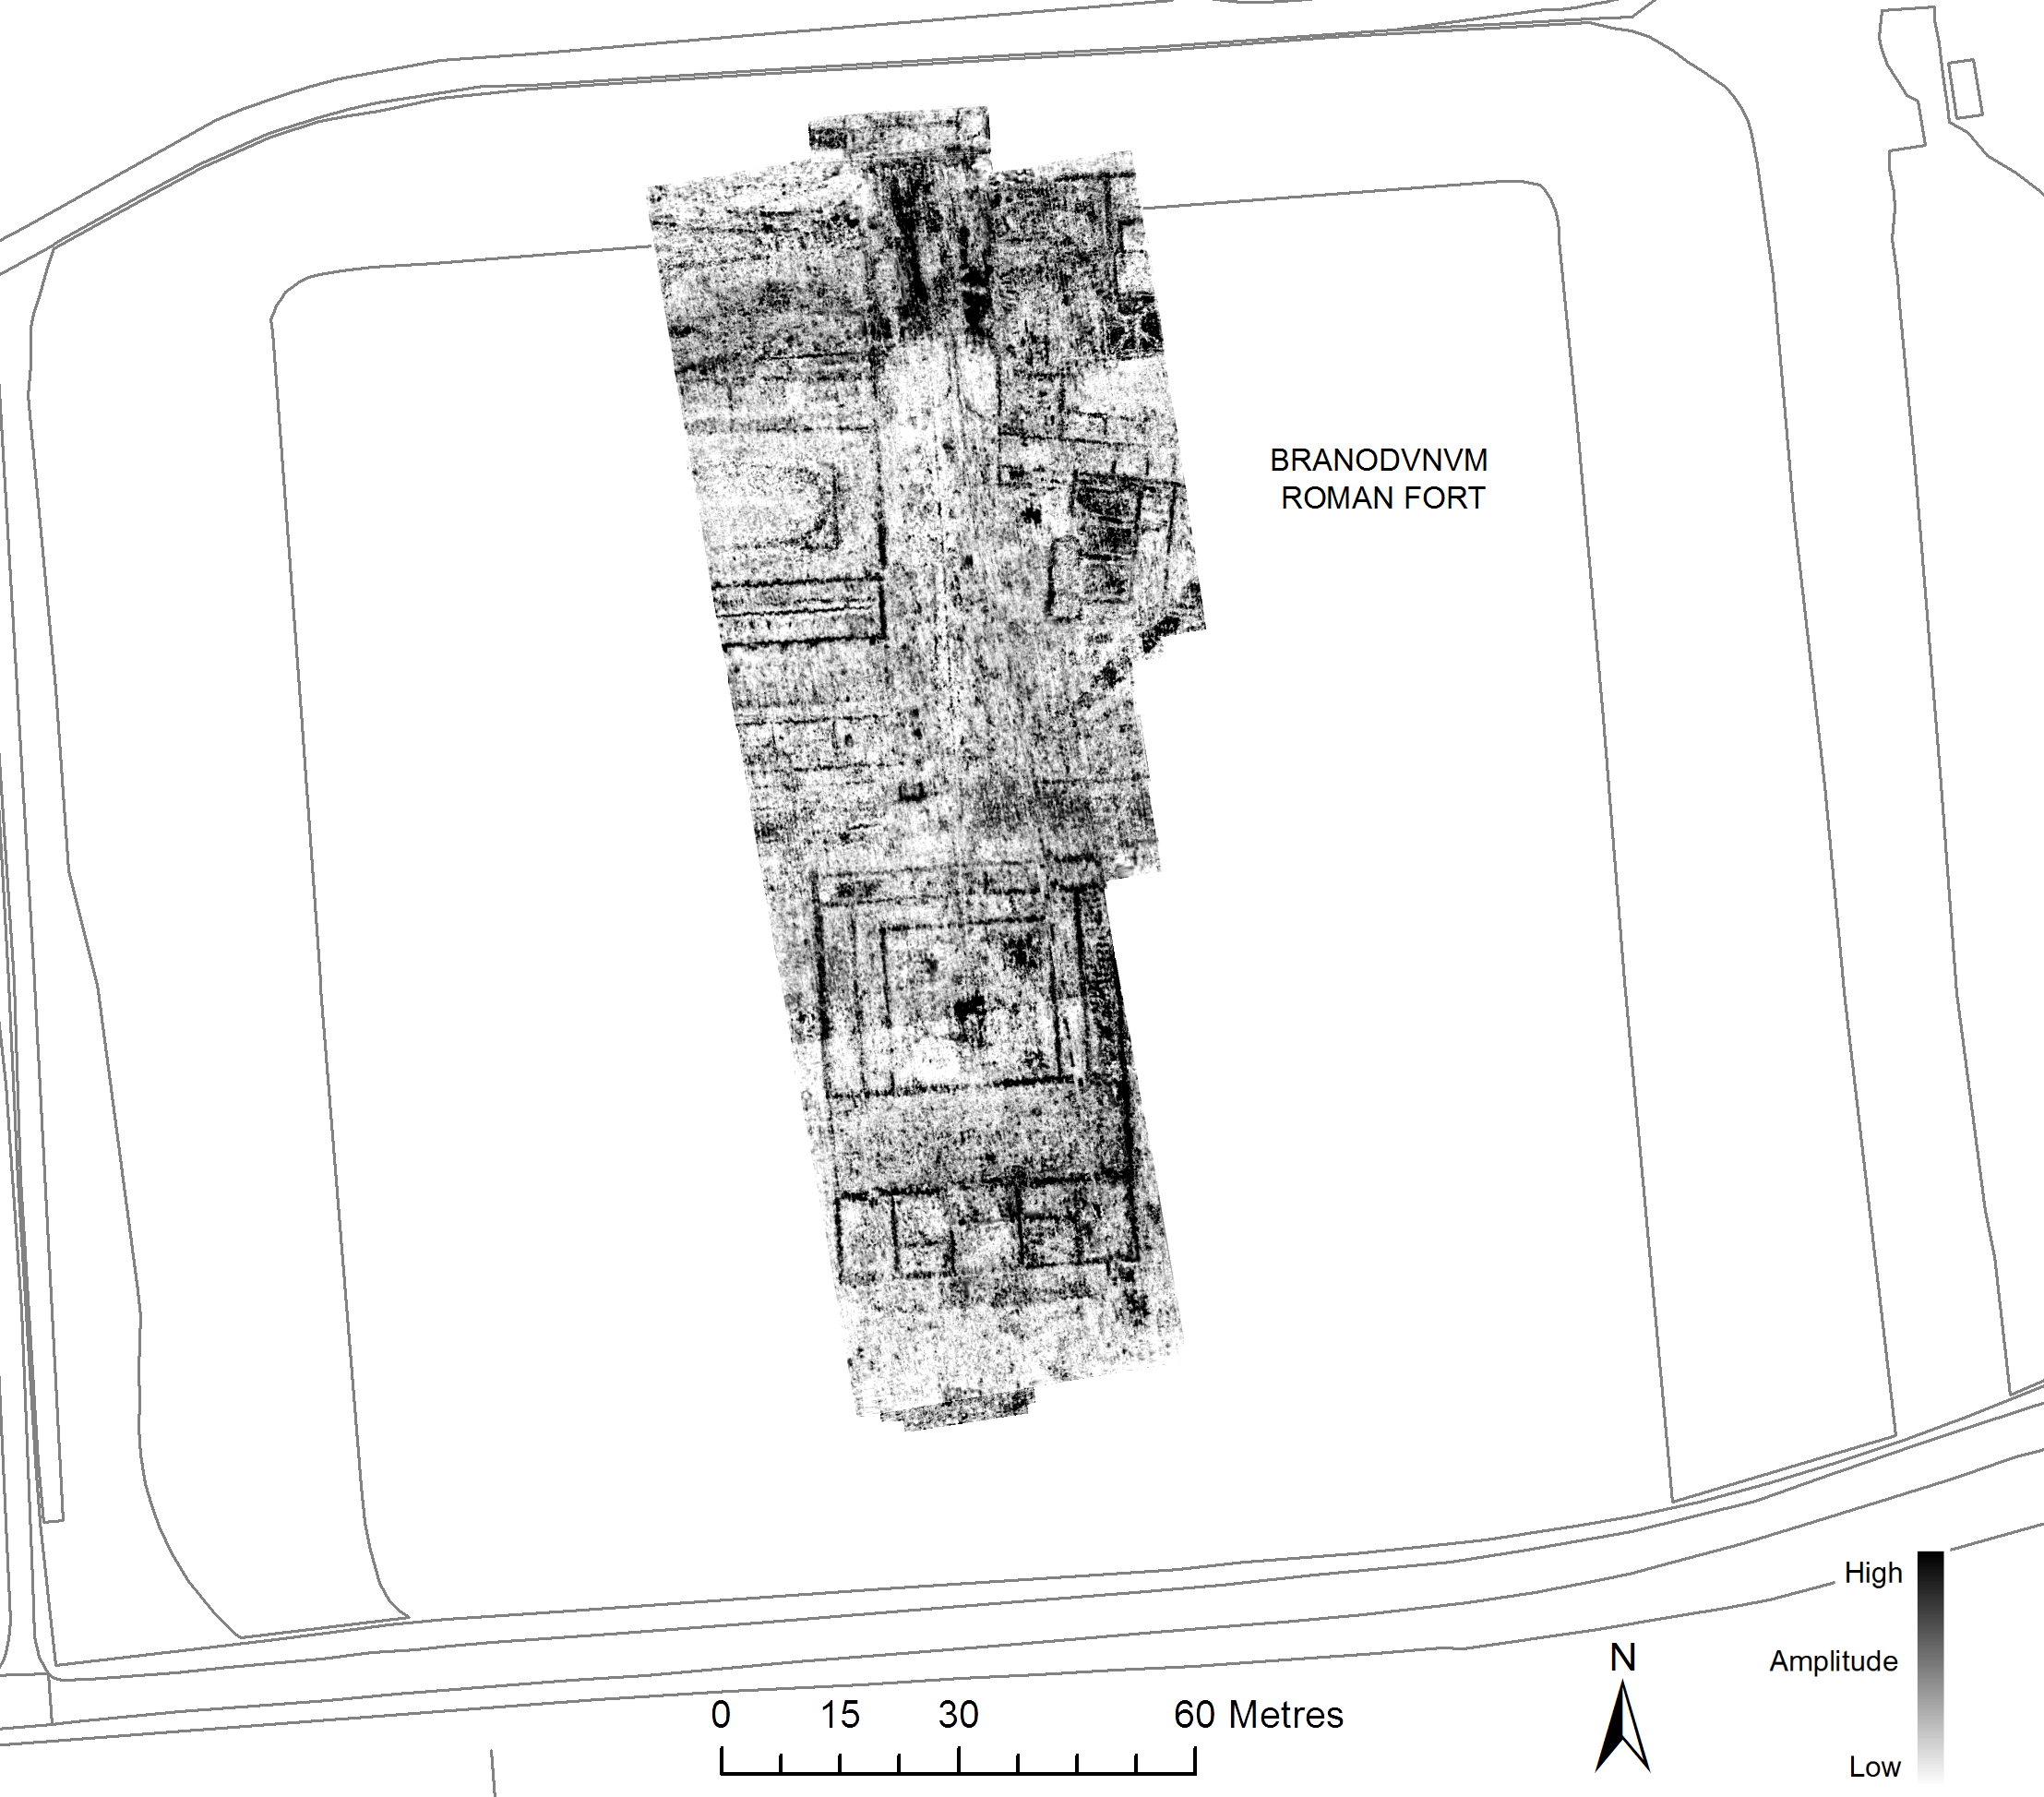 Ground Penetrating Radar Data from Branodunum - collected by SUMO Geophysics